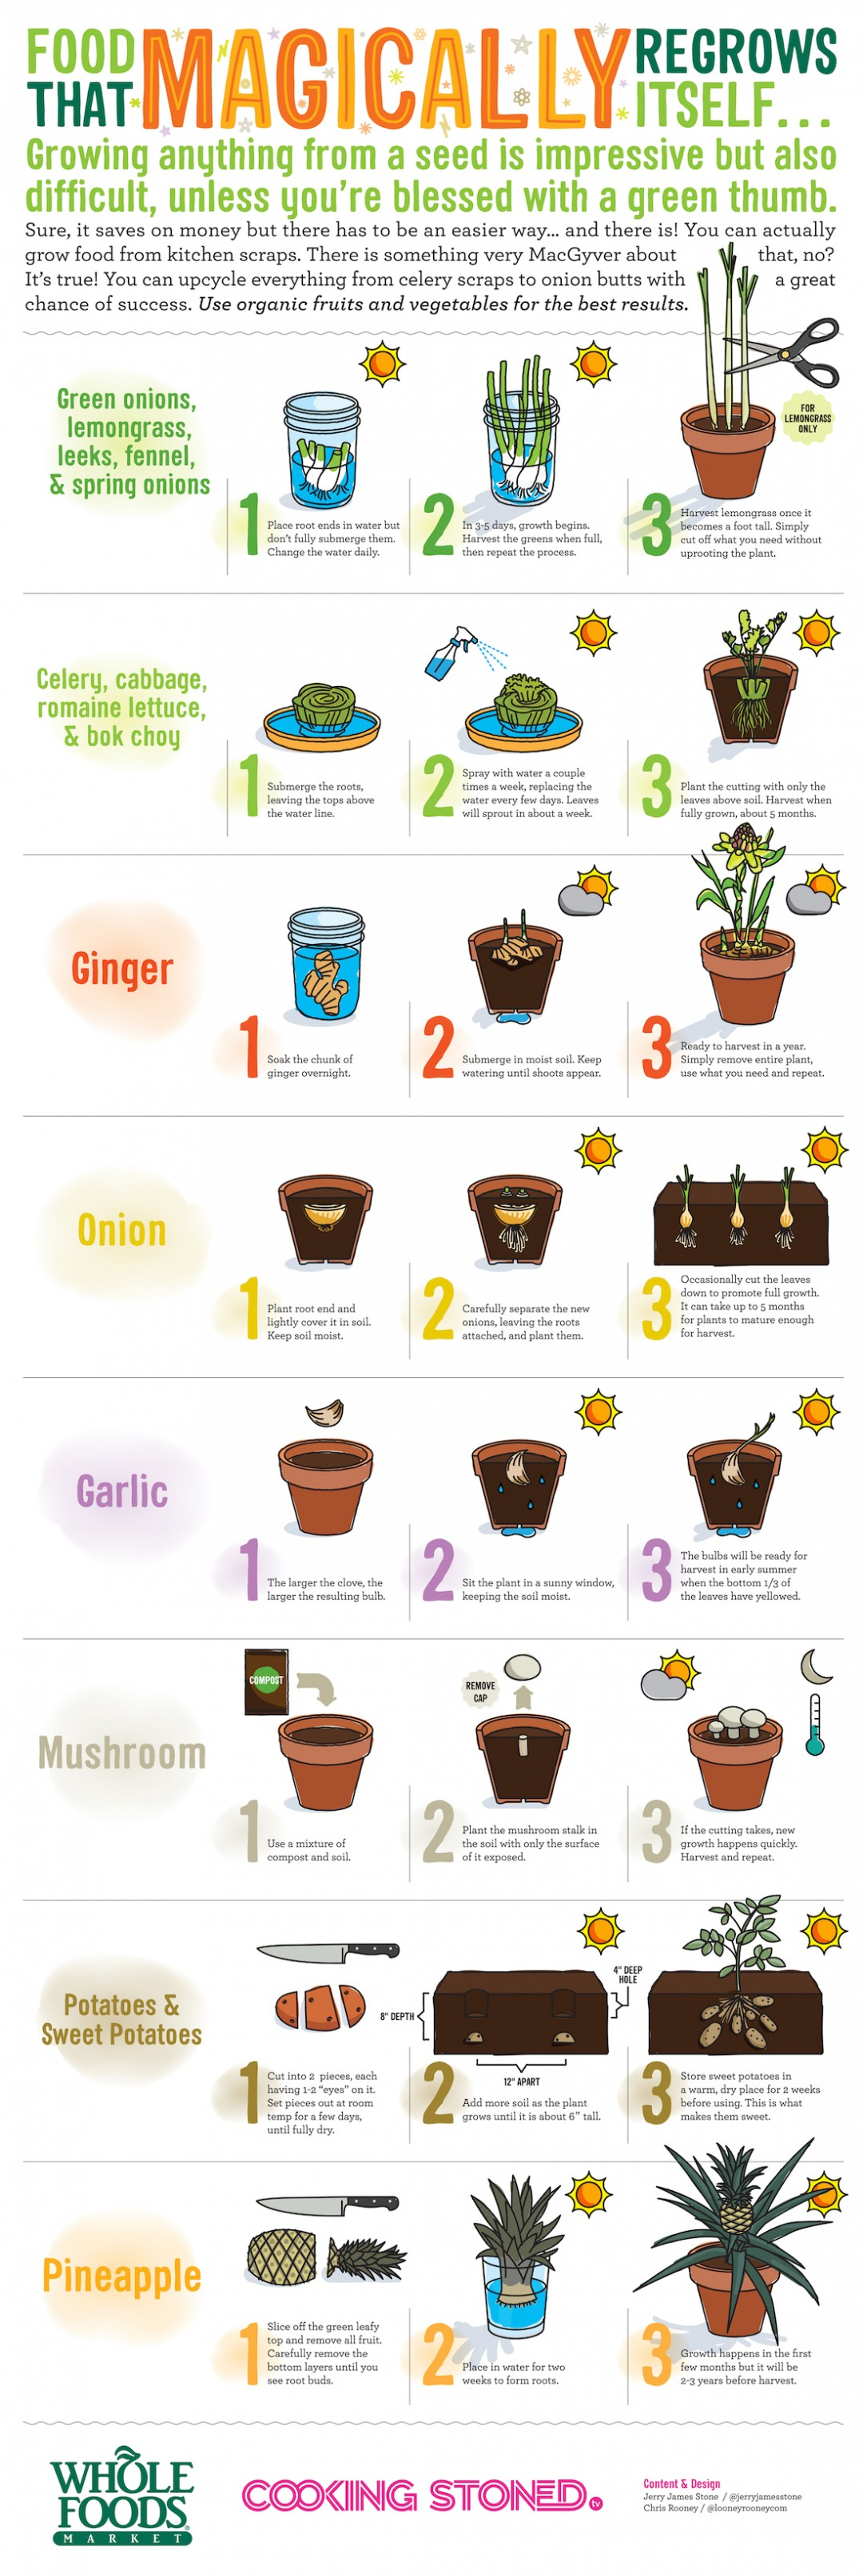 16 foods you can regrow at home